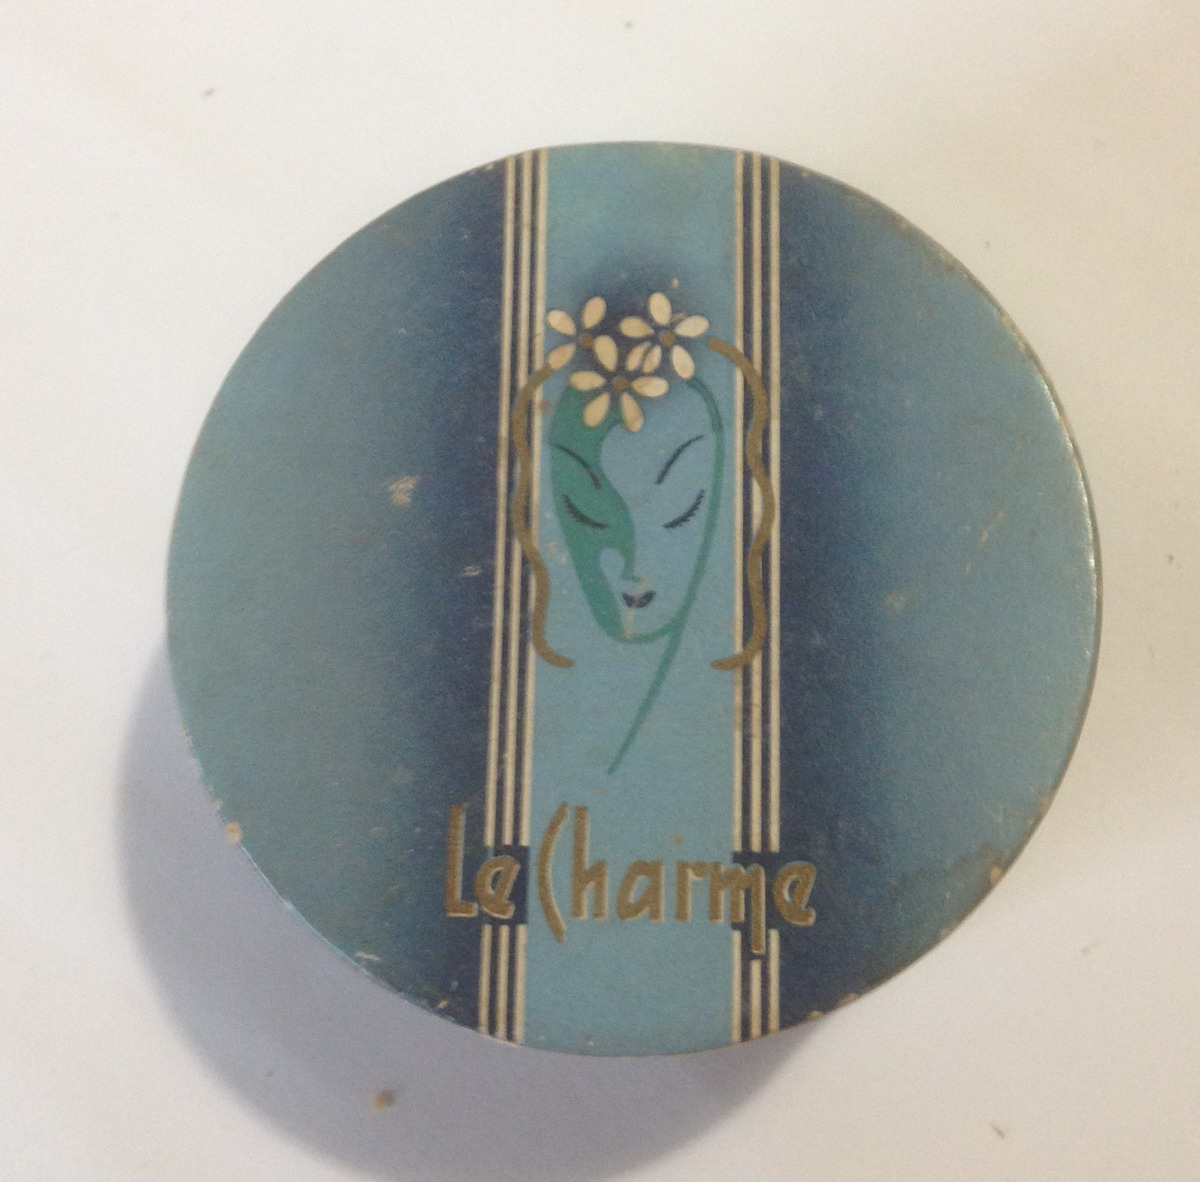 Le Charme Face Powder